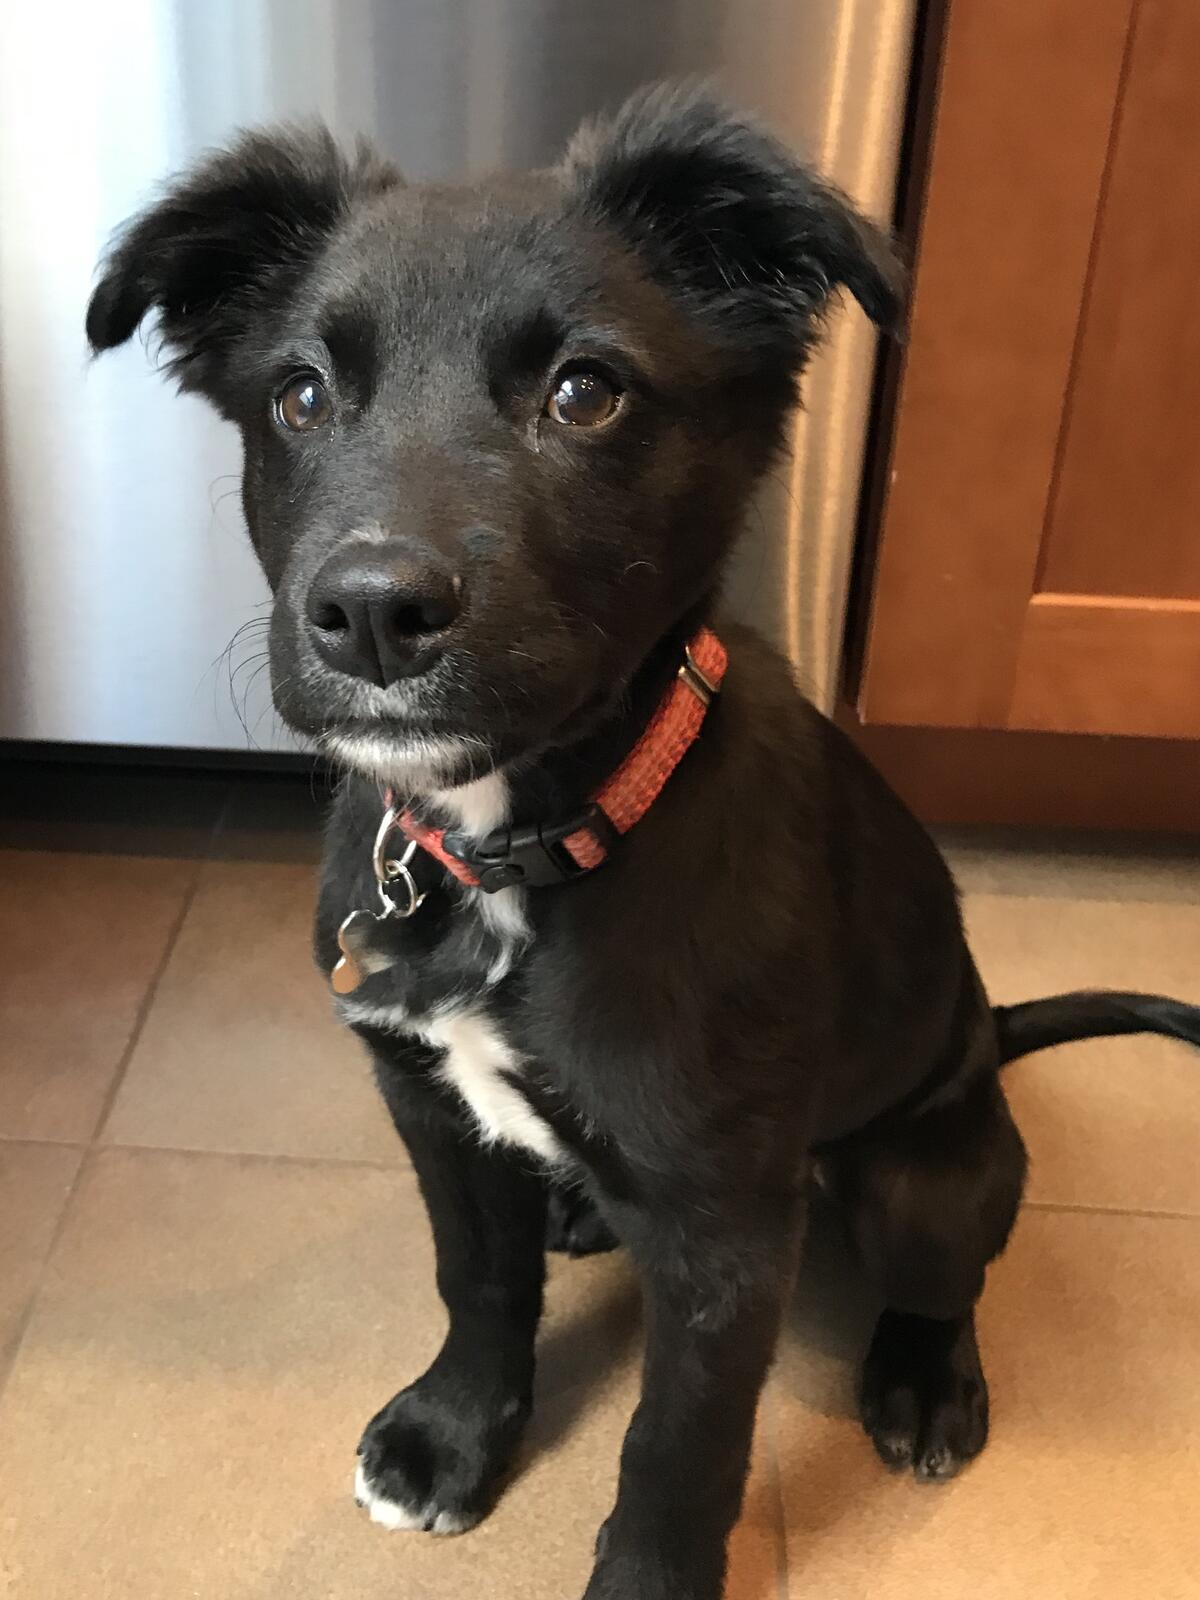 Mar 30 · Puppies Puppies and more Puppies Adoption event at Pet